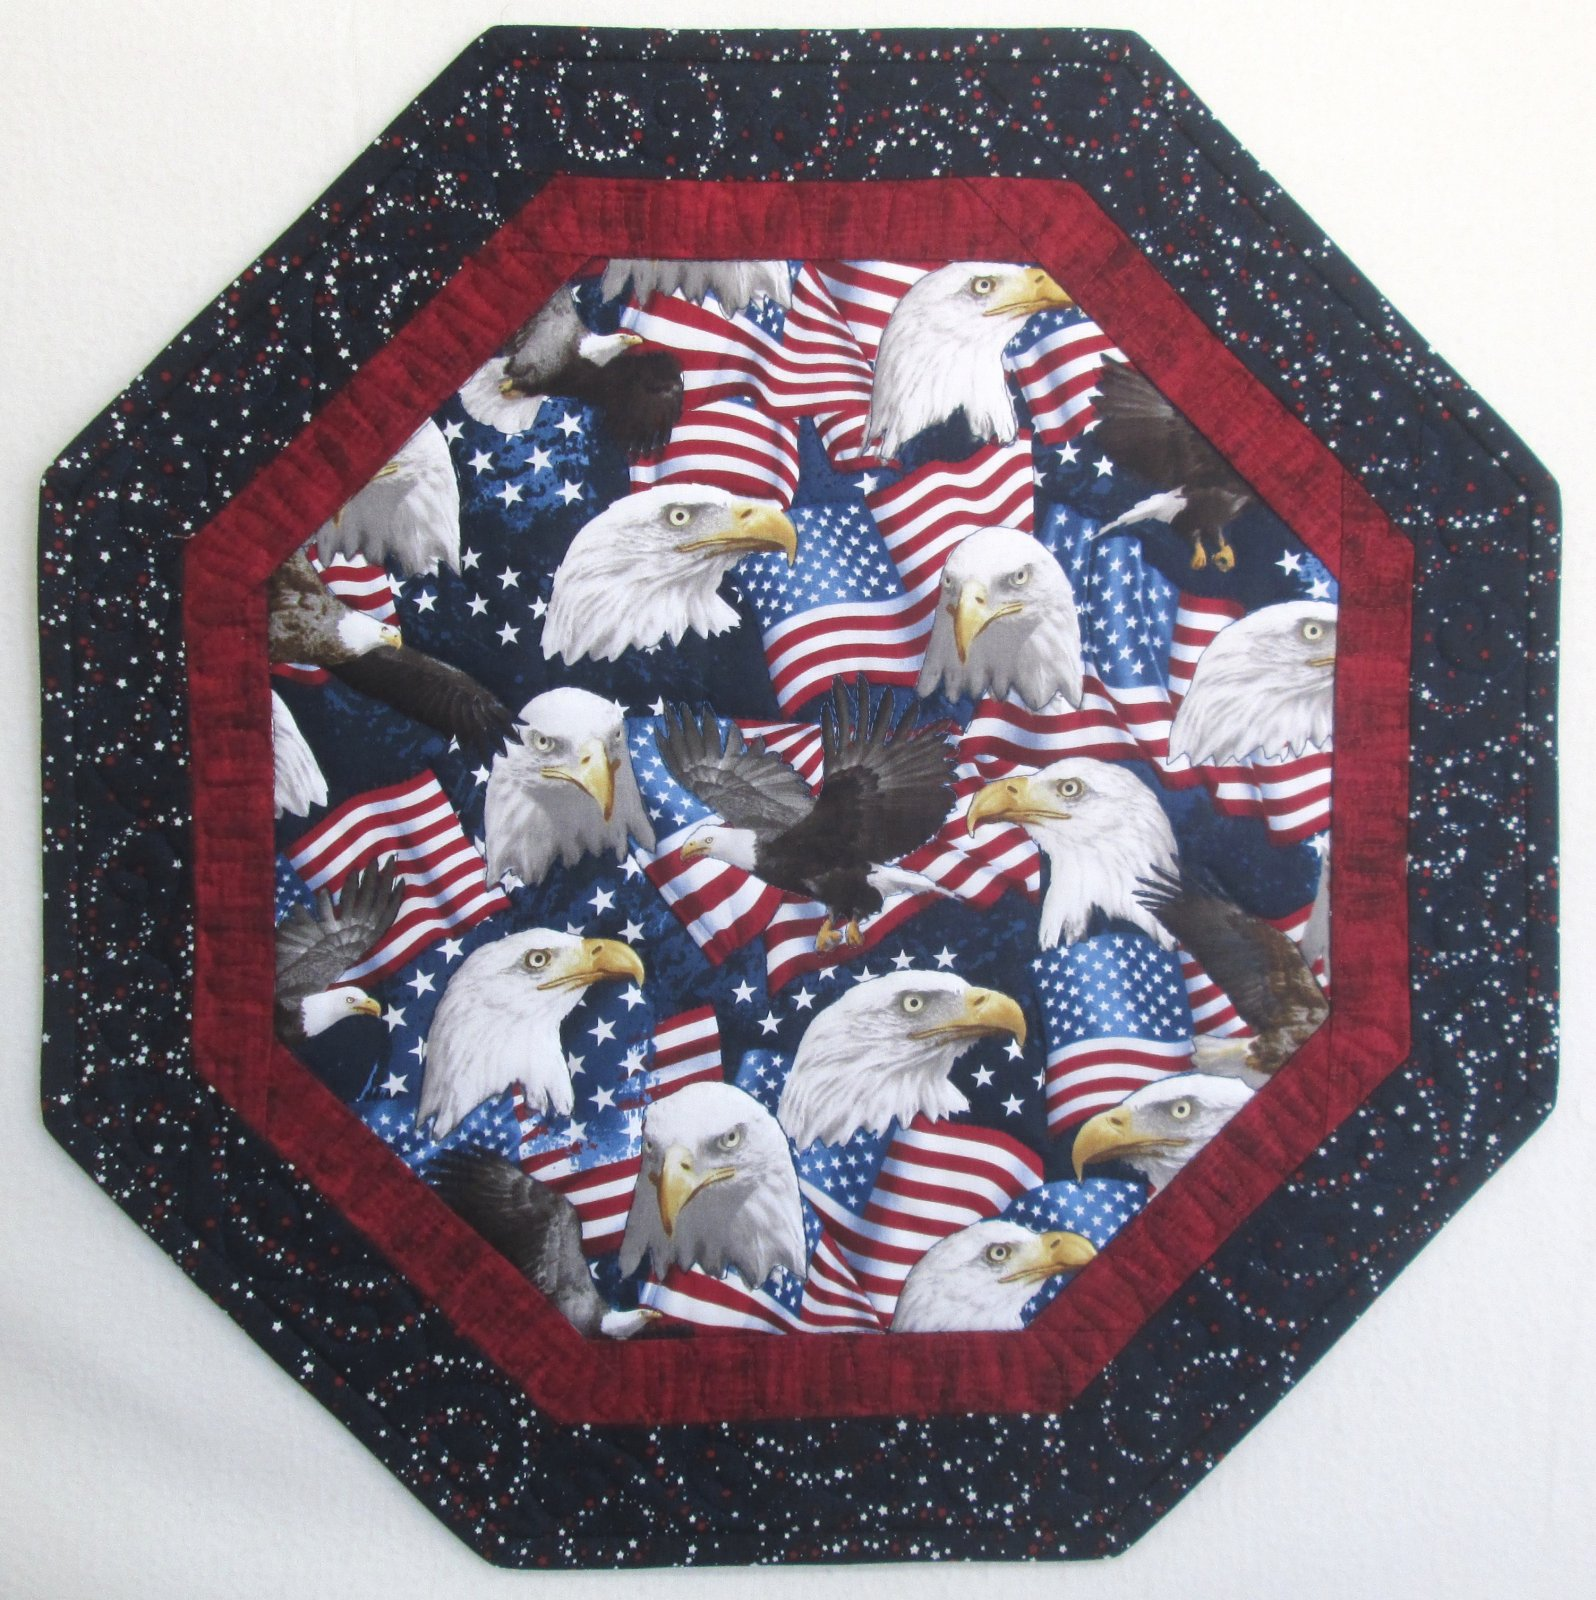 American Pride Table Time Topper Sample 18.5